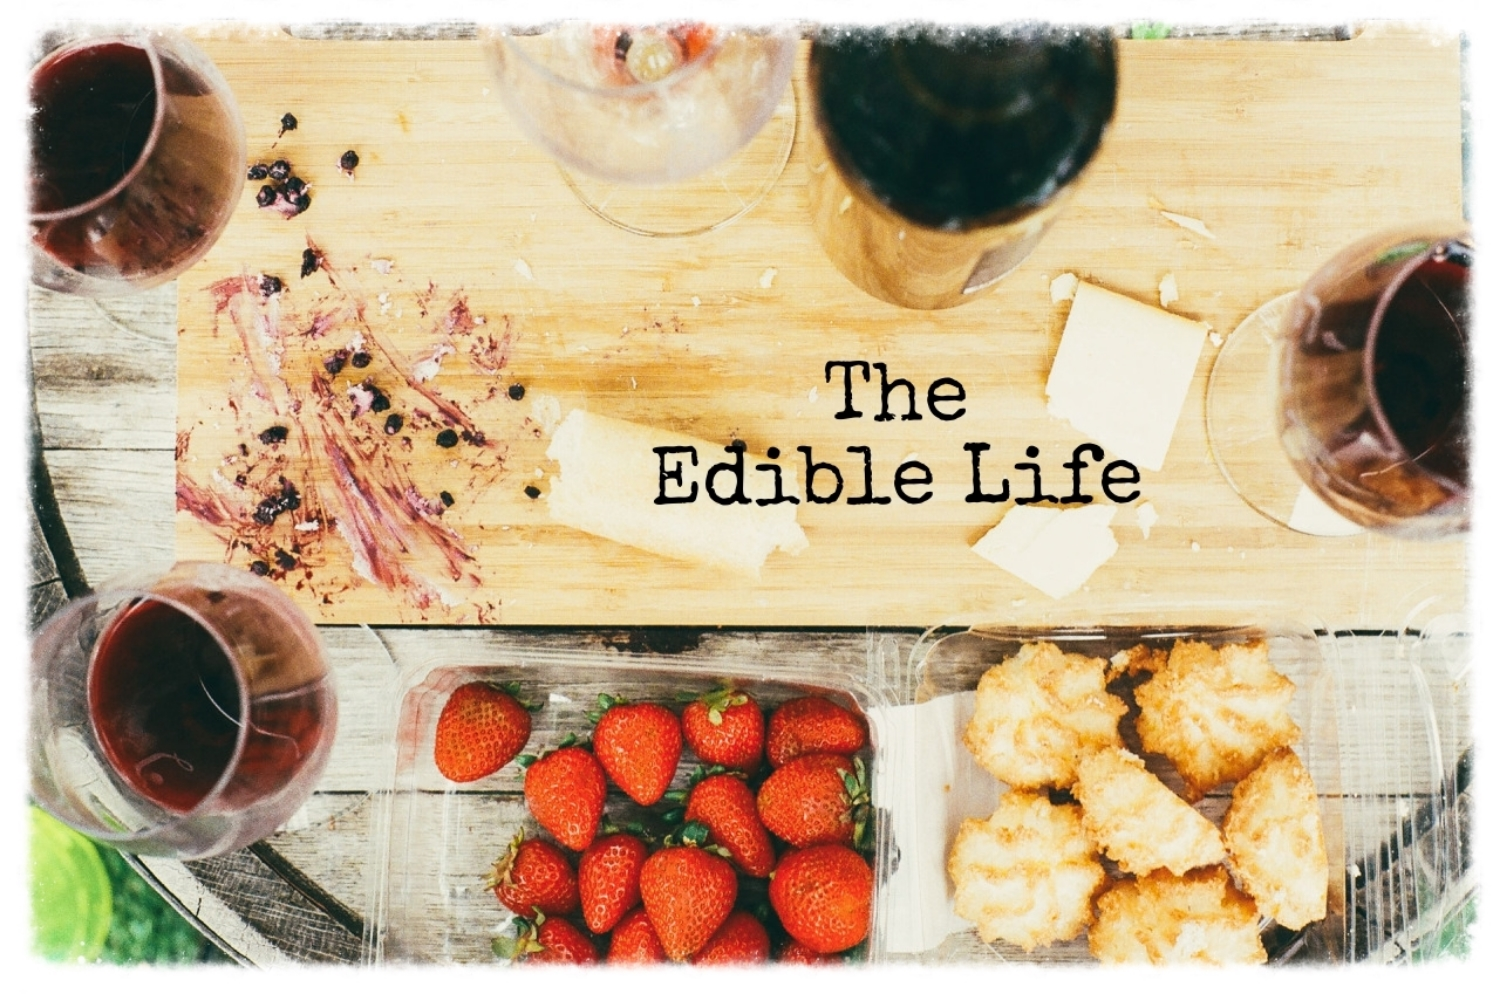 The Edible Life